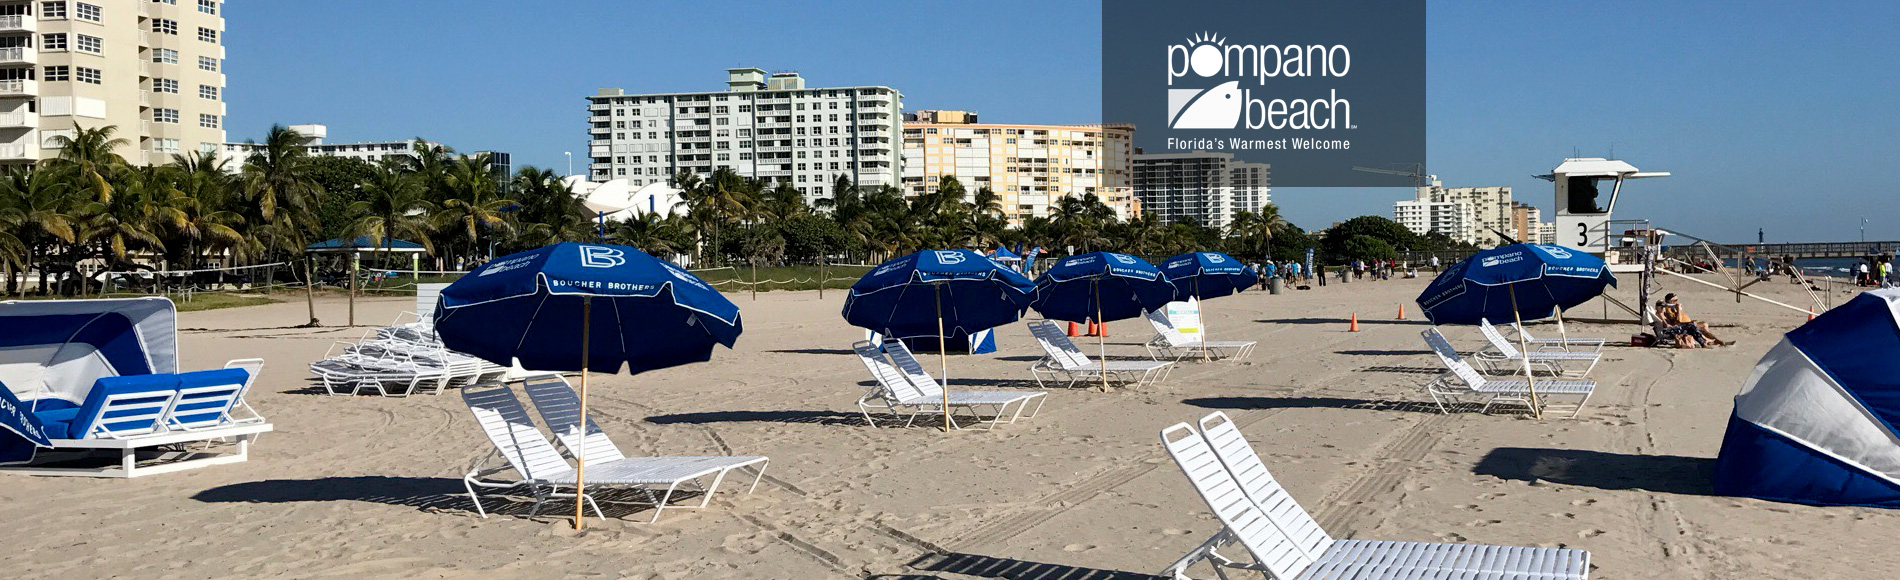 Pompano Beach Umbrella Rentals